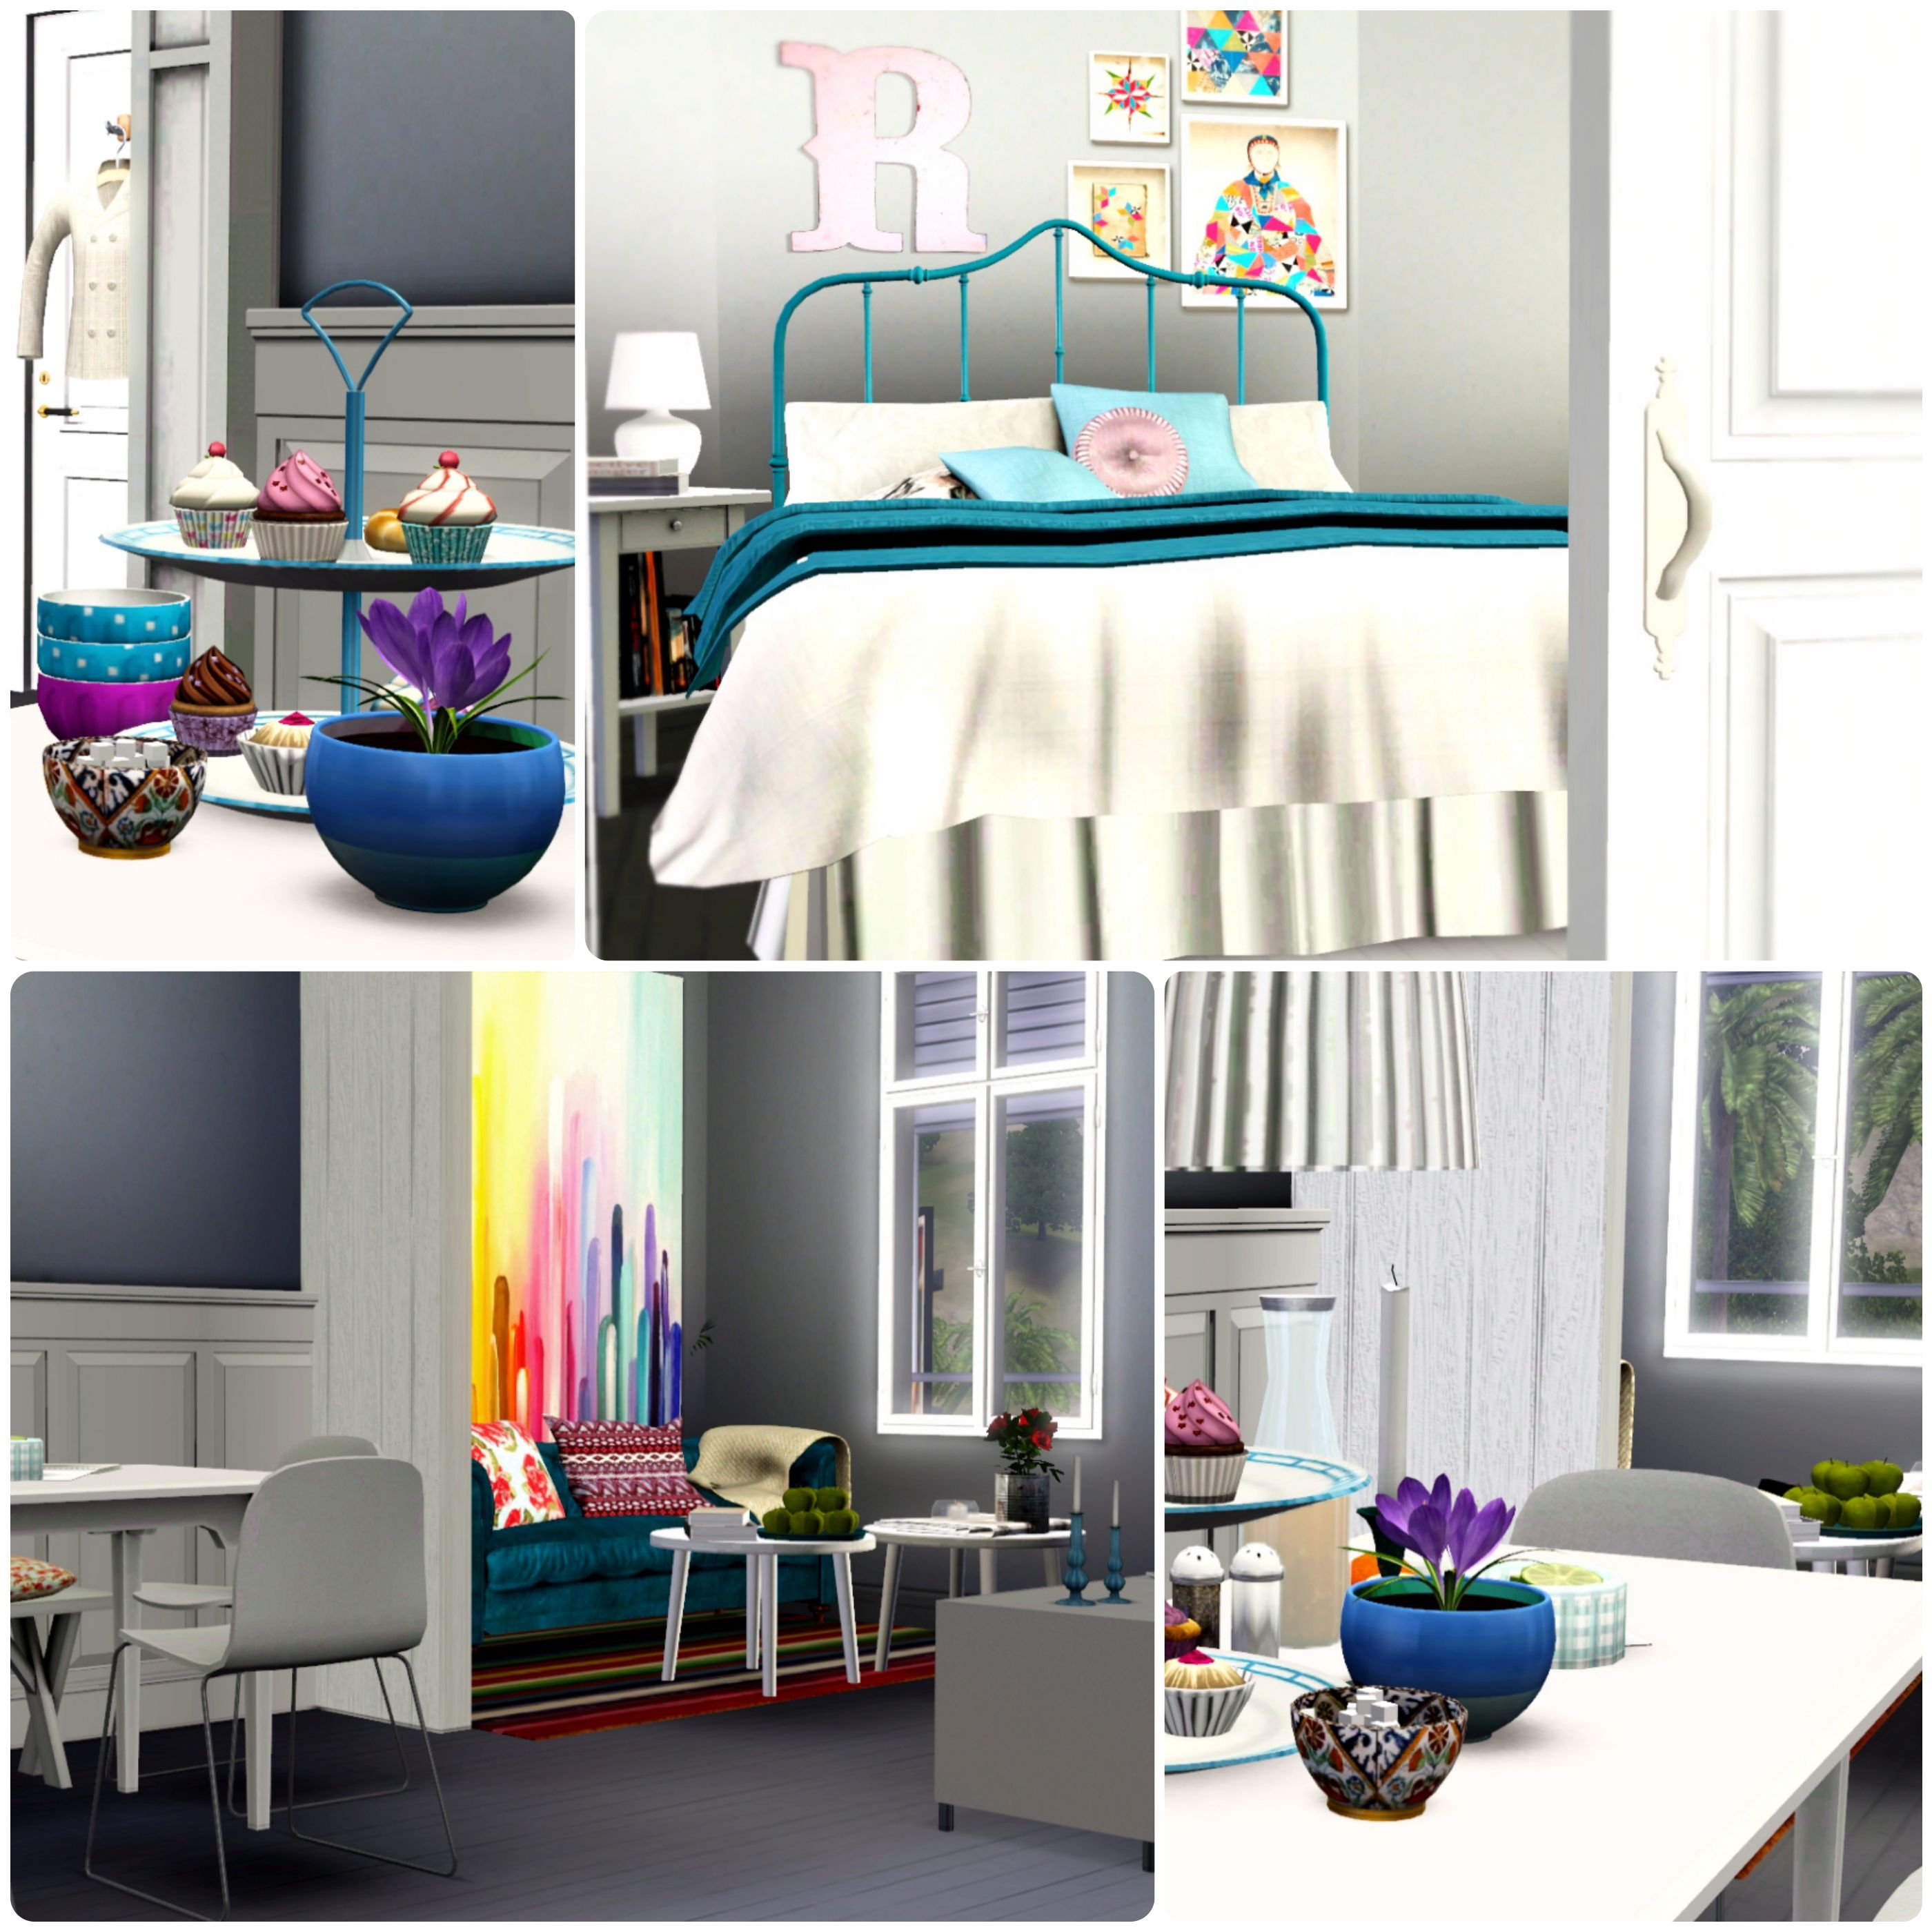 Sims 3 Bedroom Urban Living 20 By Simberry Bedroom And Dining Download Sims